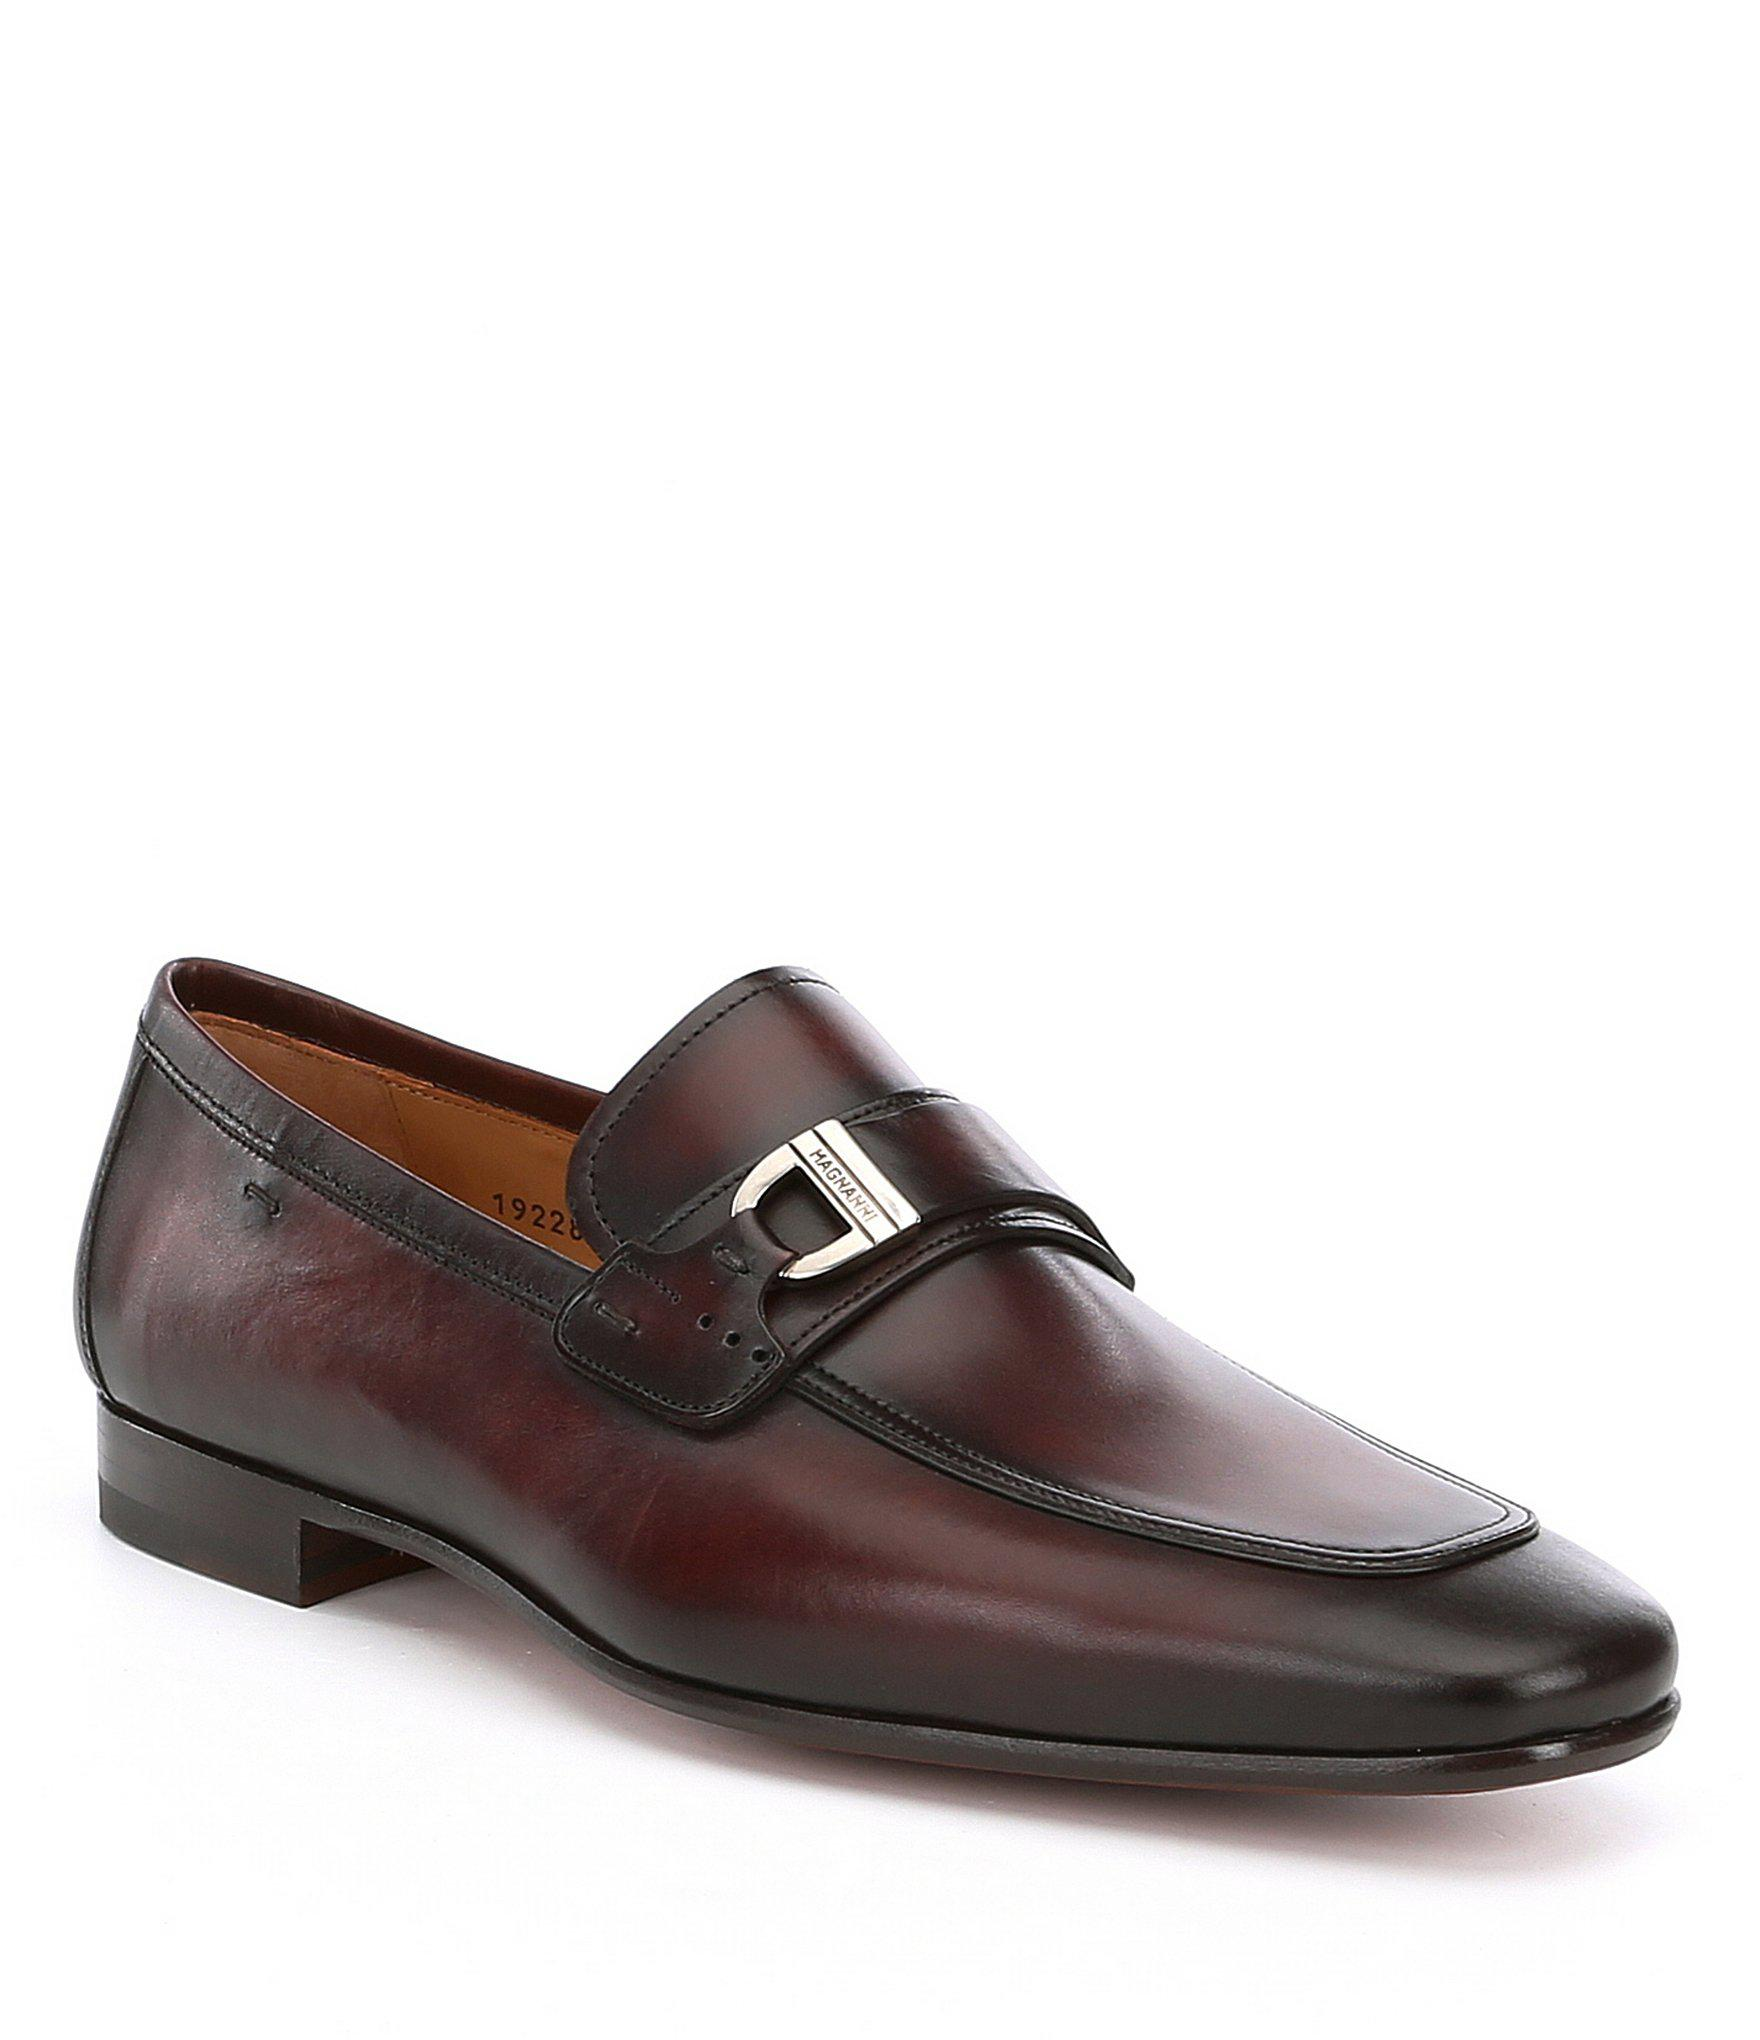 b6e6349b755 Magnanni Shoes - Brown Men S Rico Loafers for Men - Lyst. View fullscreen